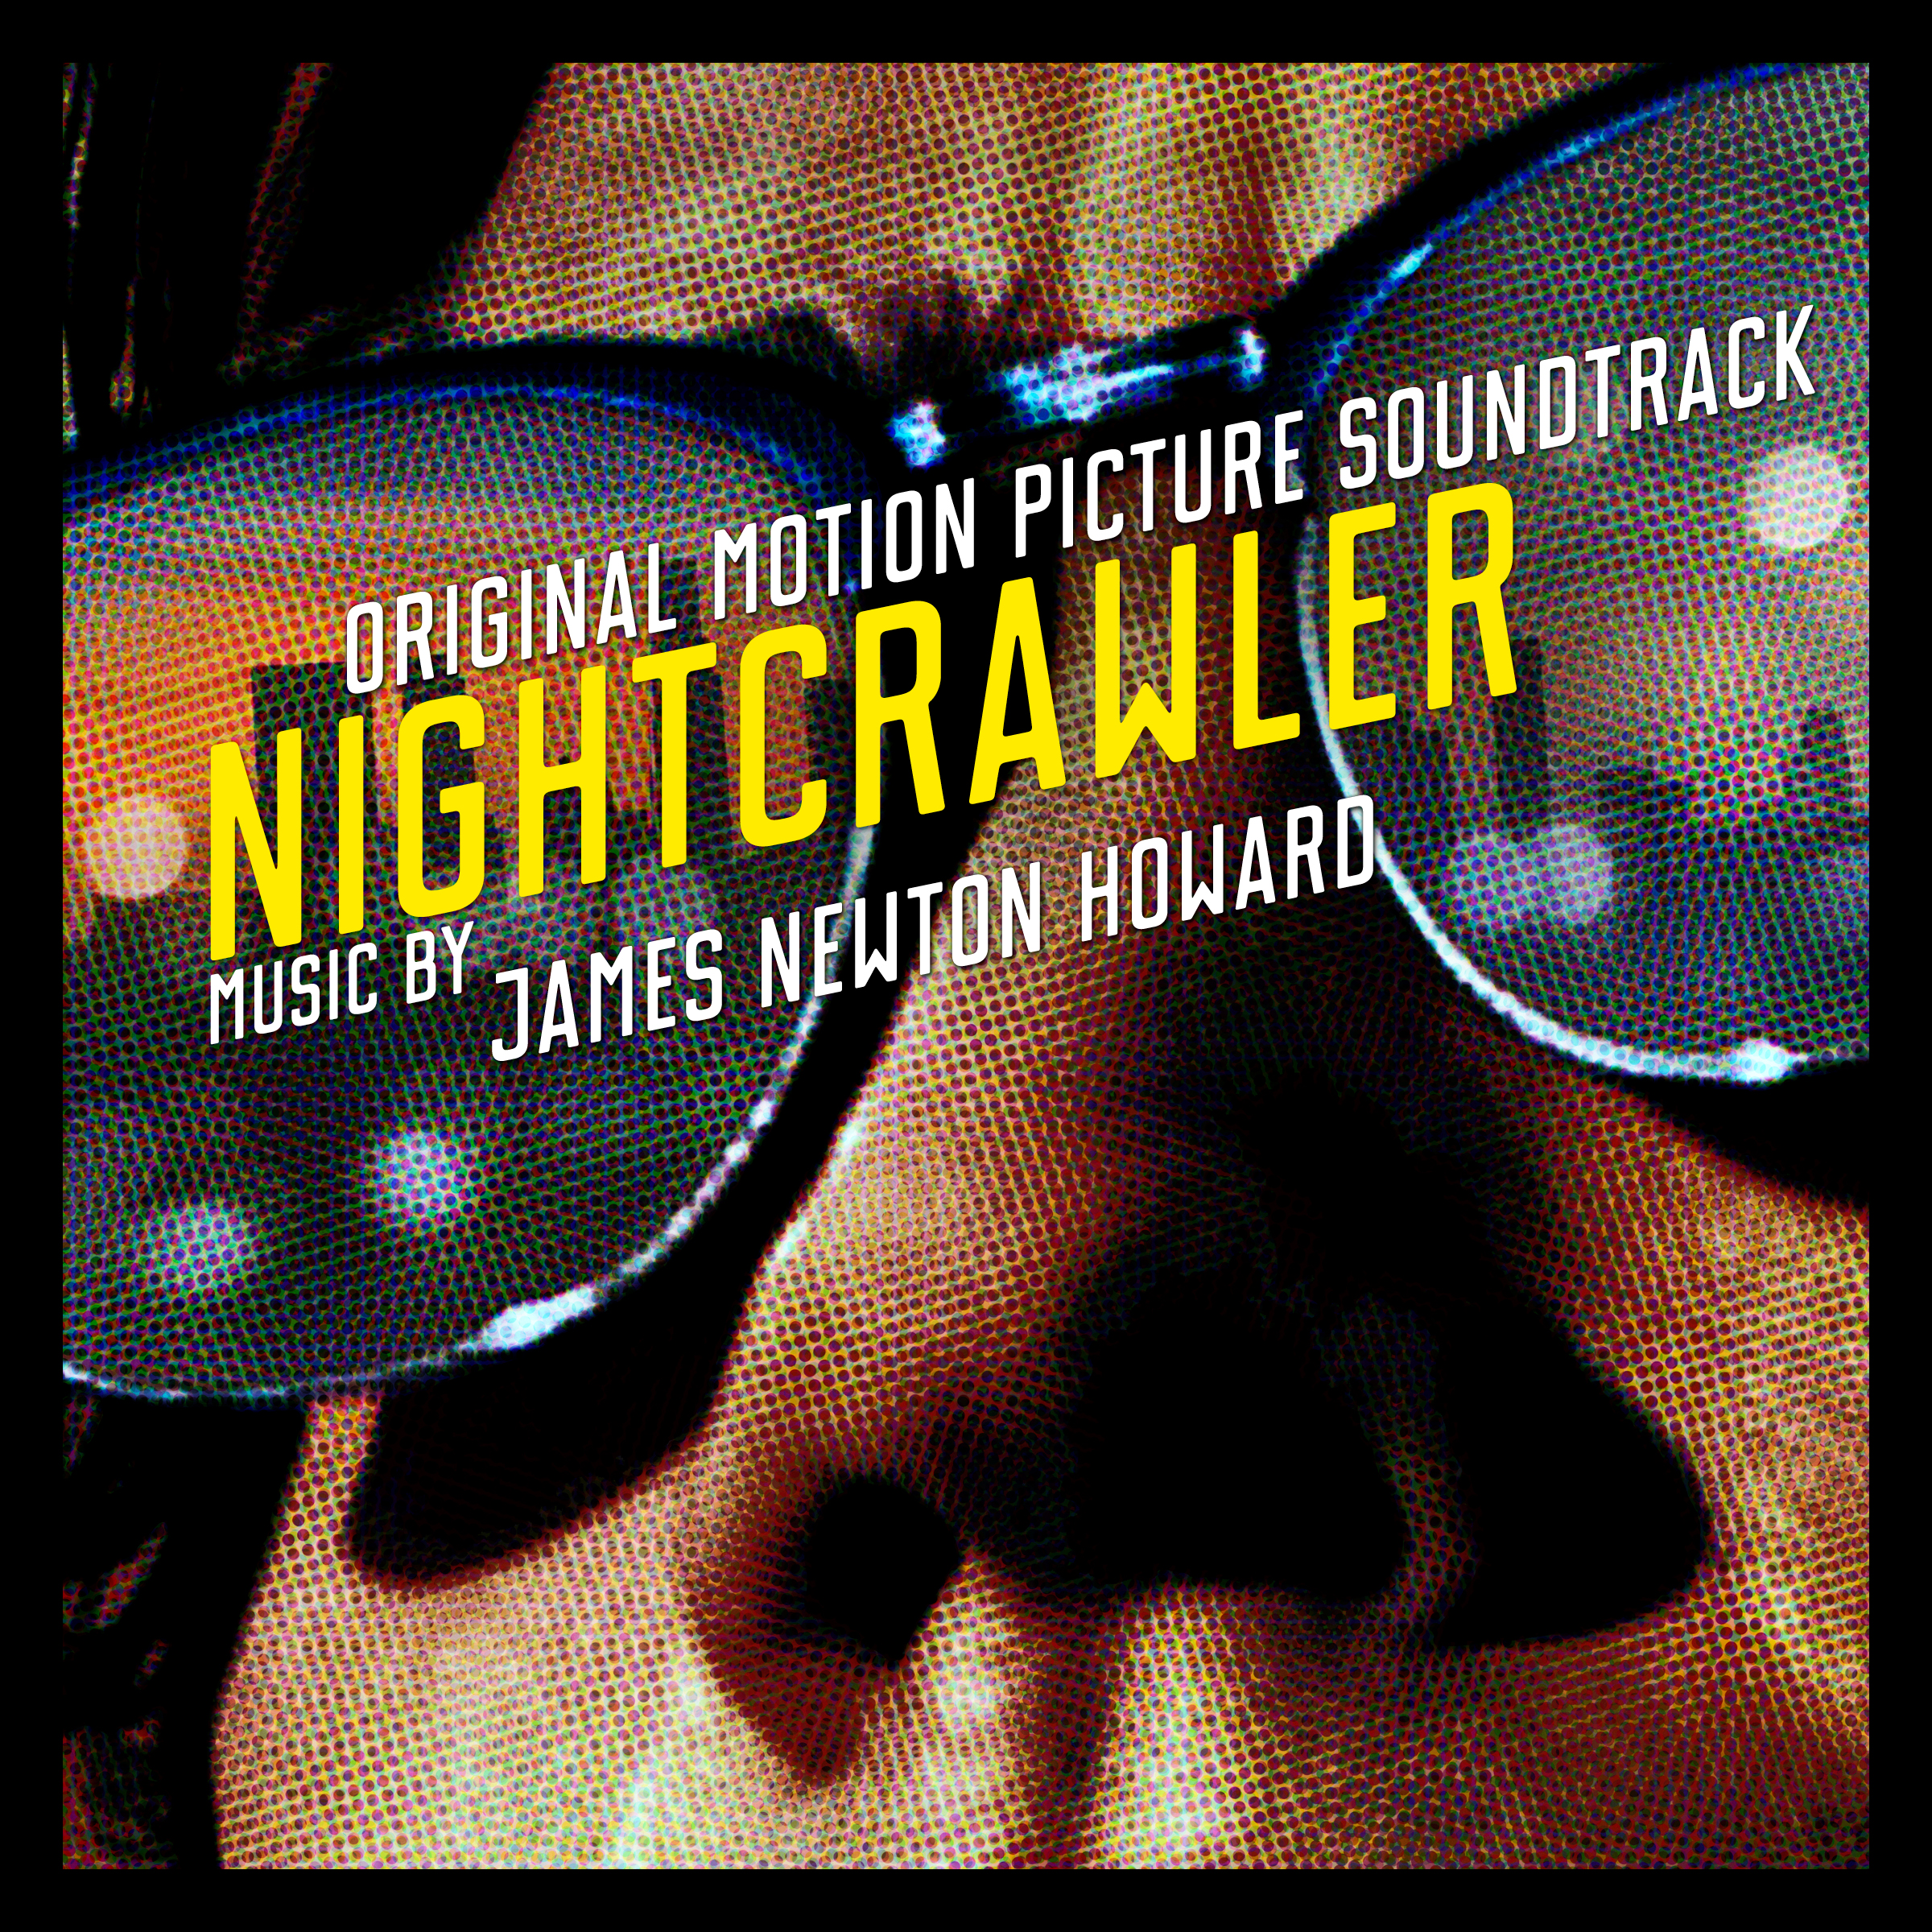 nightcrawler-james-newton-howard_2400.jpg